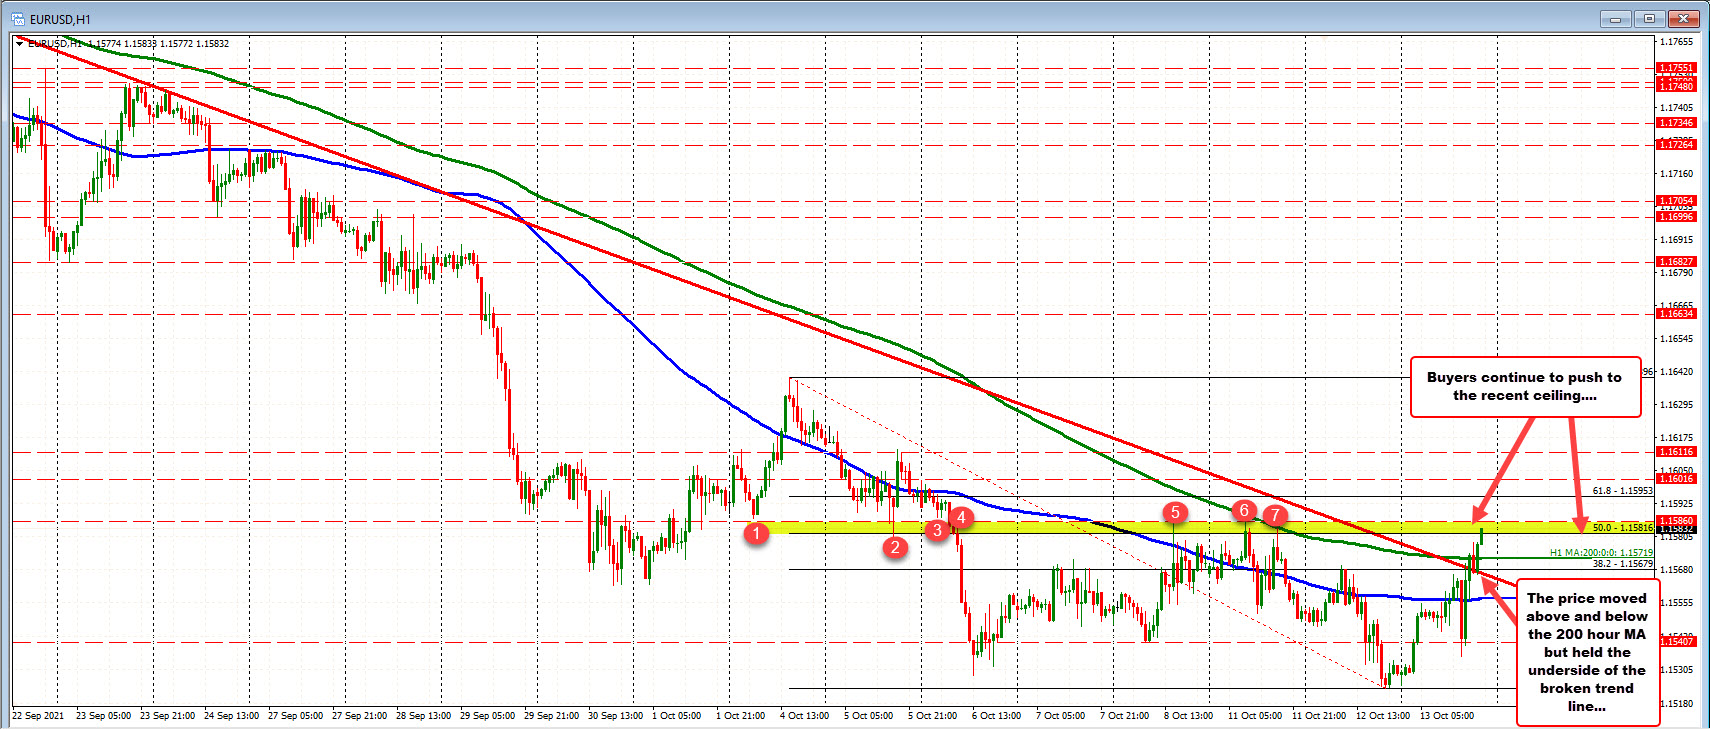 EURUSD moves away from its 200 hour MA